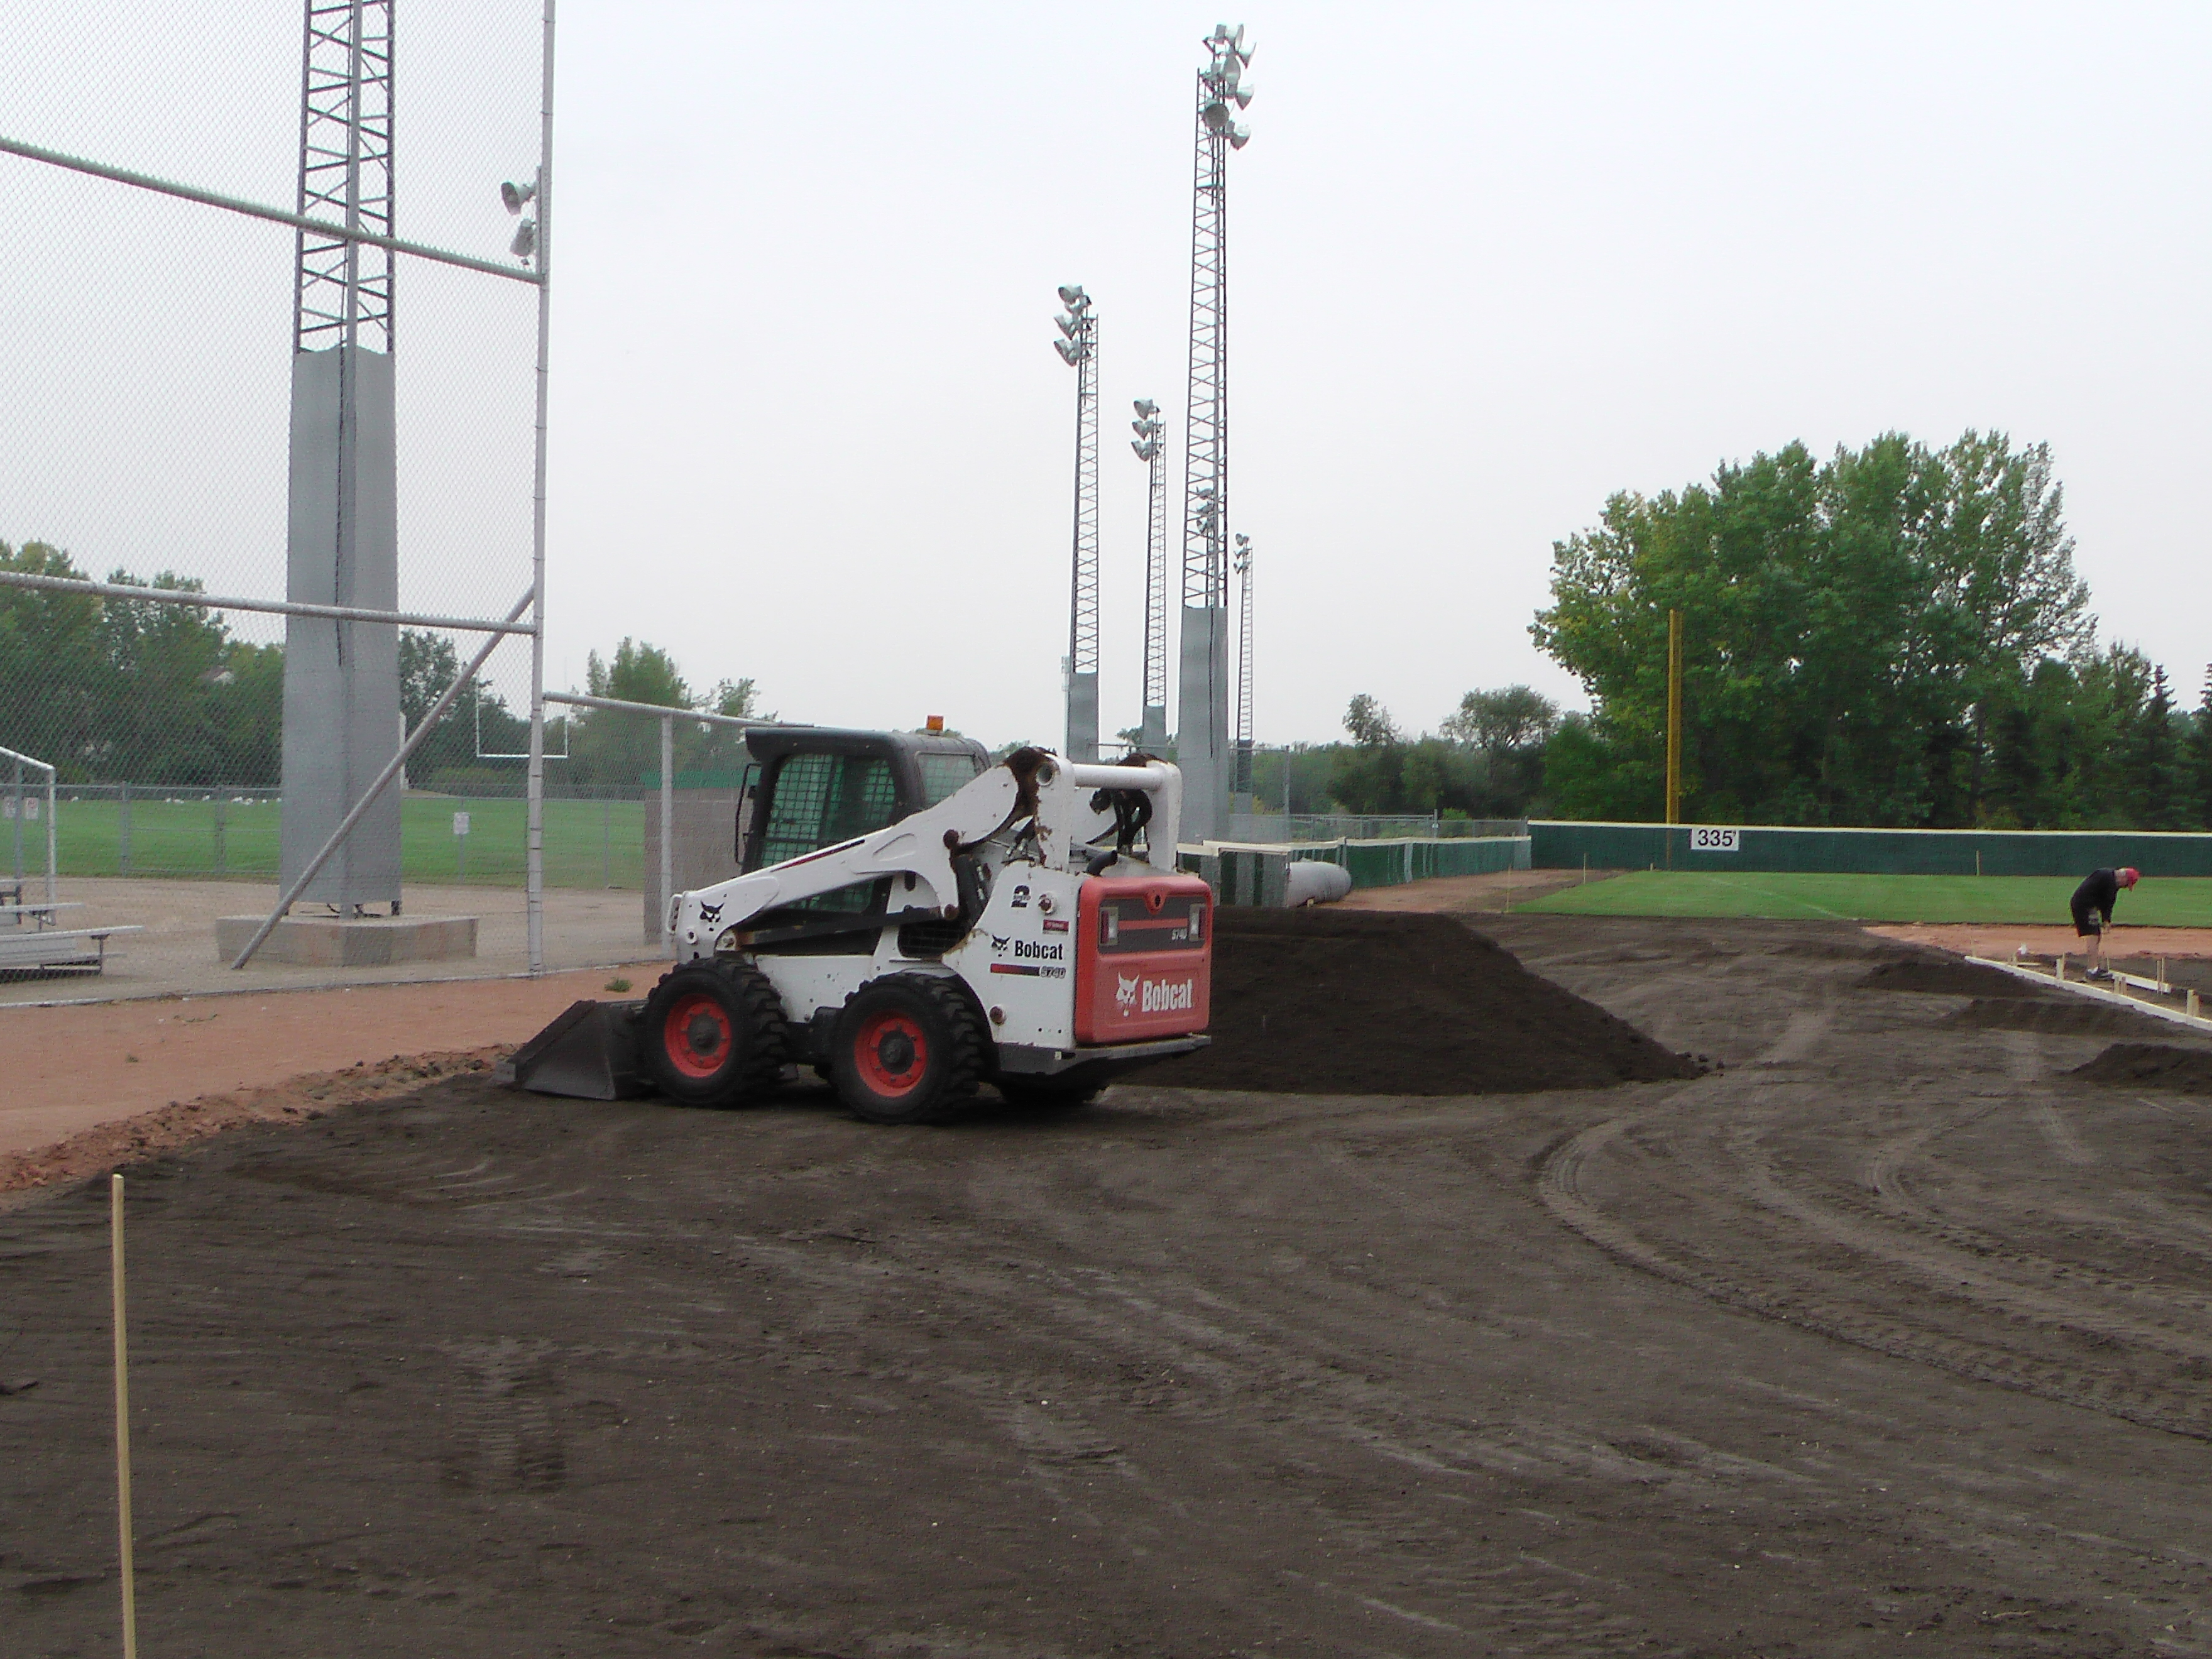 Aug 26/27 2018 Optimist Park Renovations, Continue Leveling Top Soil, More Top Soil added, Digging/Leveling Base Lines/Start Level Shale - Image 10